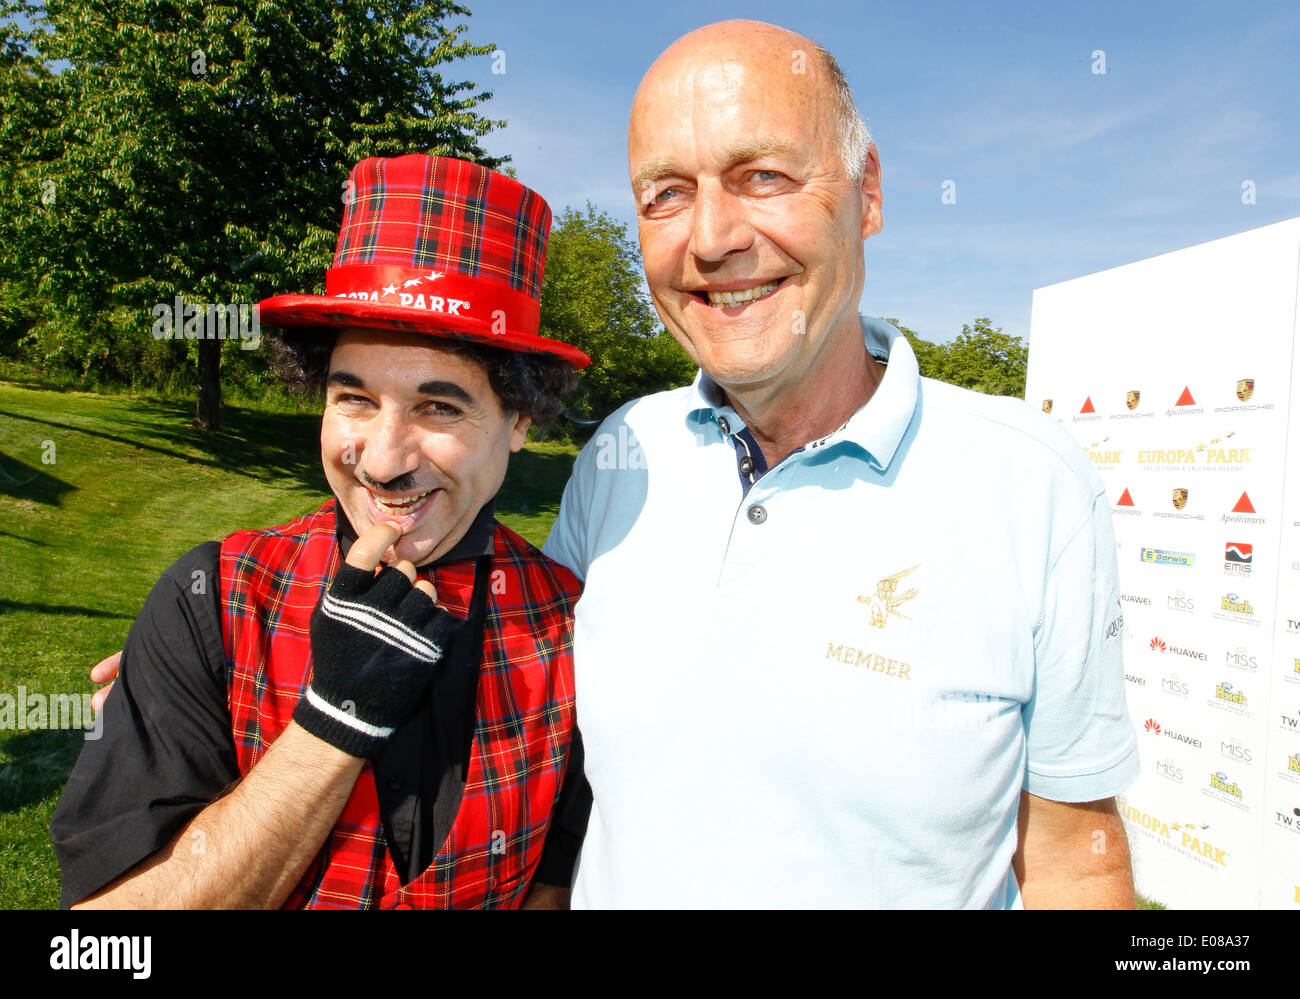 Herbolzheim, Germany - May 5, 2014: Eagles Charity Golf Cup and Gala at Golfclub Breisgau and Europa Park, Rust with Politician Laurenz Meyer and Charly Credit:  Mandoga Media/Alamy Live News - Stock Image